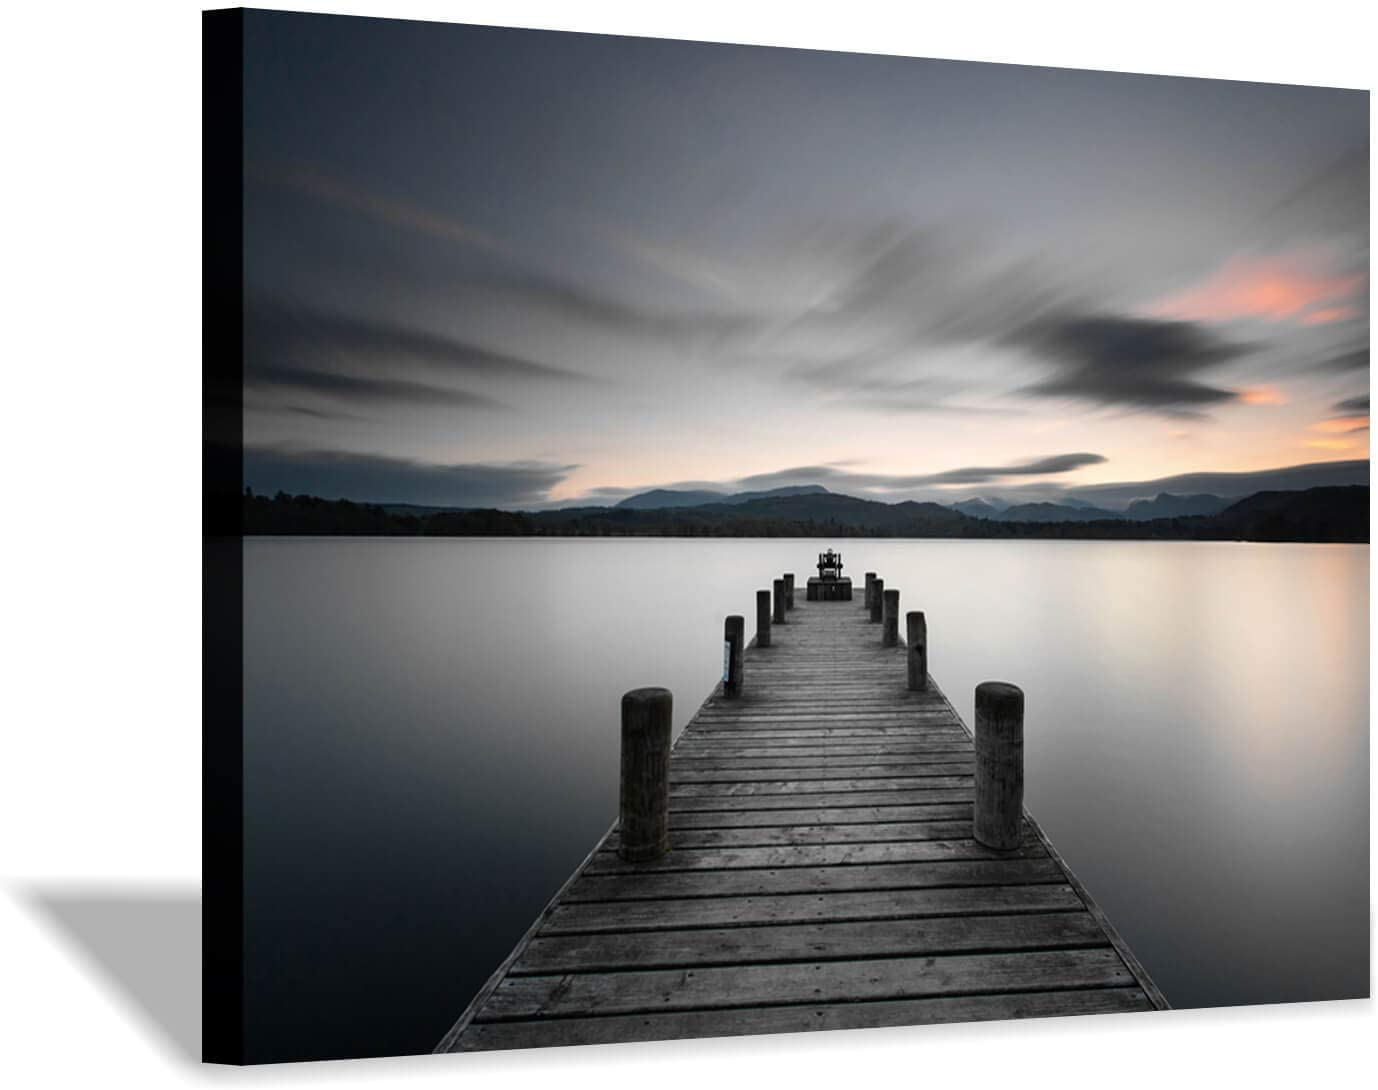 Pier Picture Canvas Wall Art: Vintage Lake Dock Artwork Painting for Bedroom (36'' x 24'' x 1 Panel)